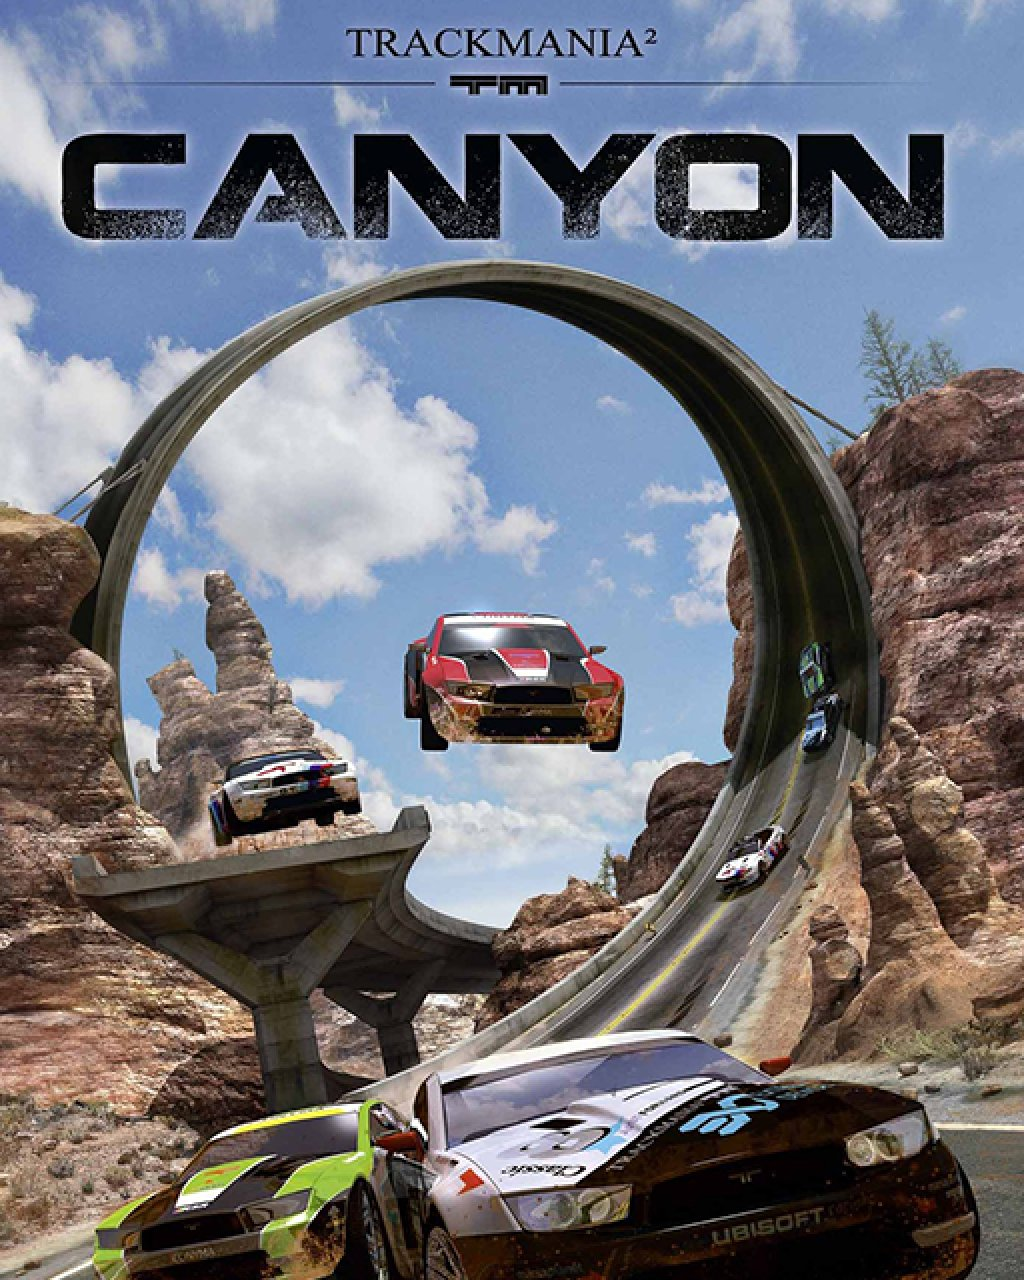 TrackMania 2 Canyon krabice